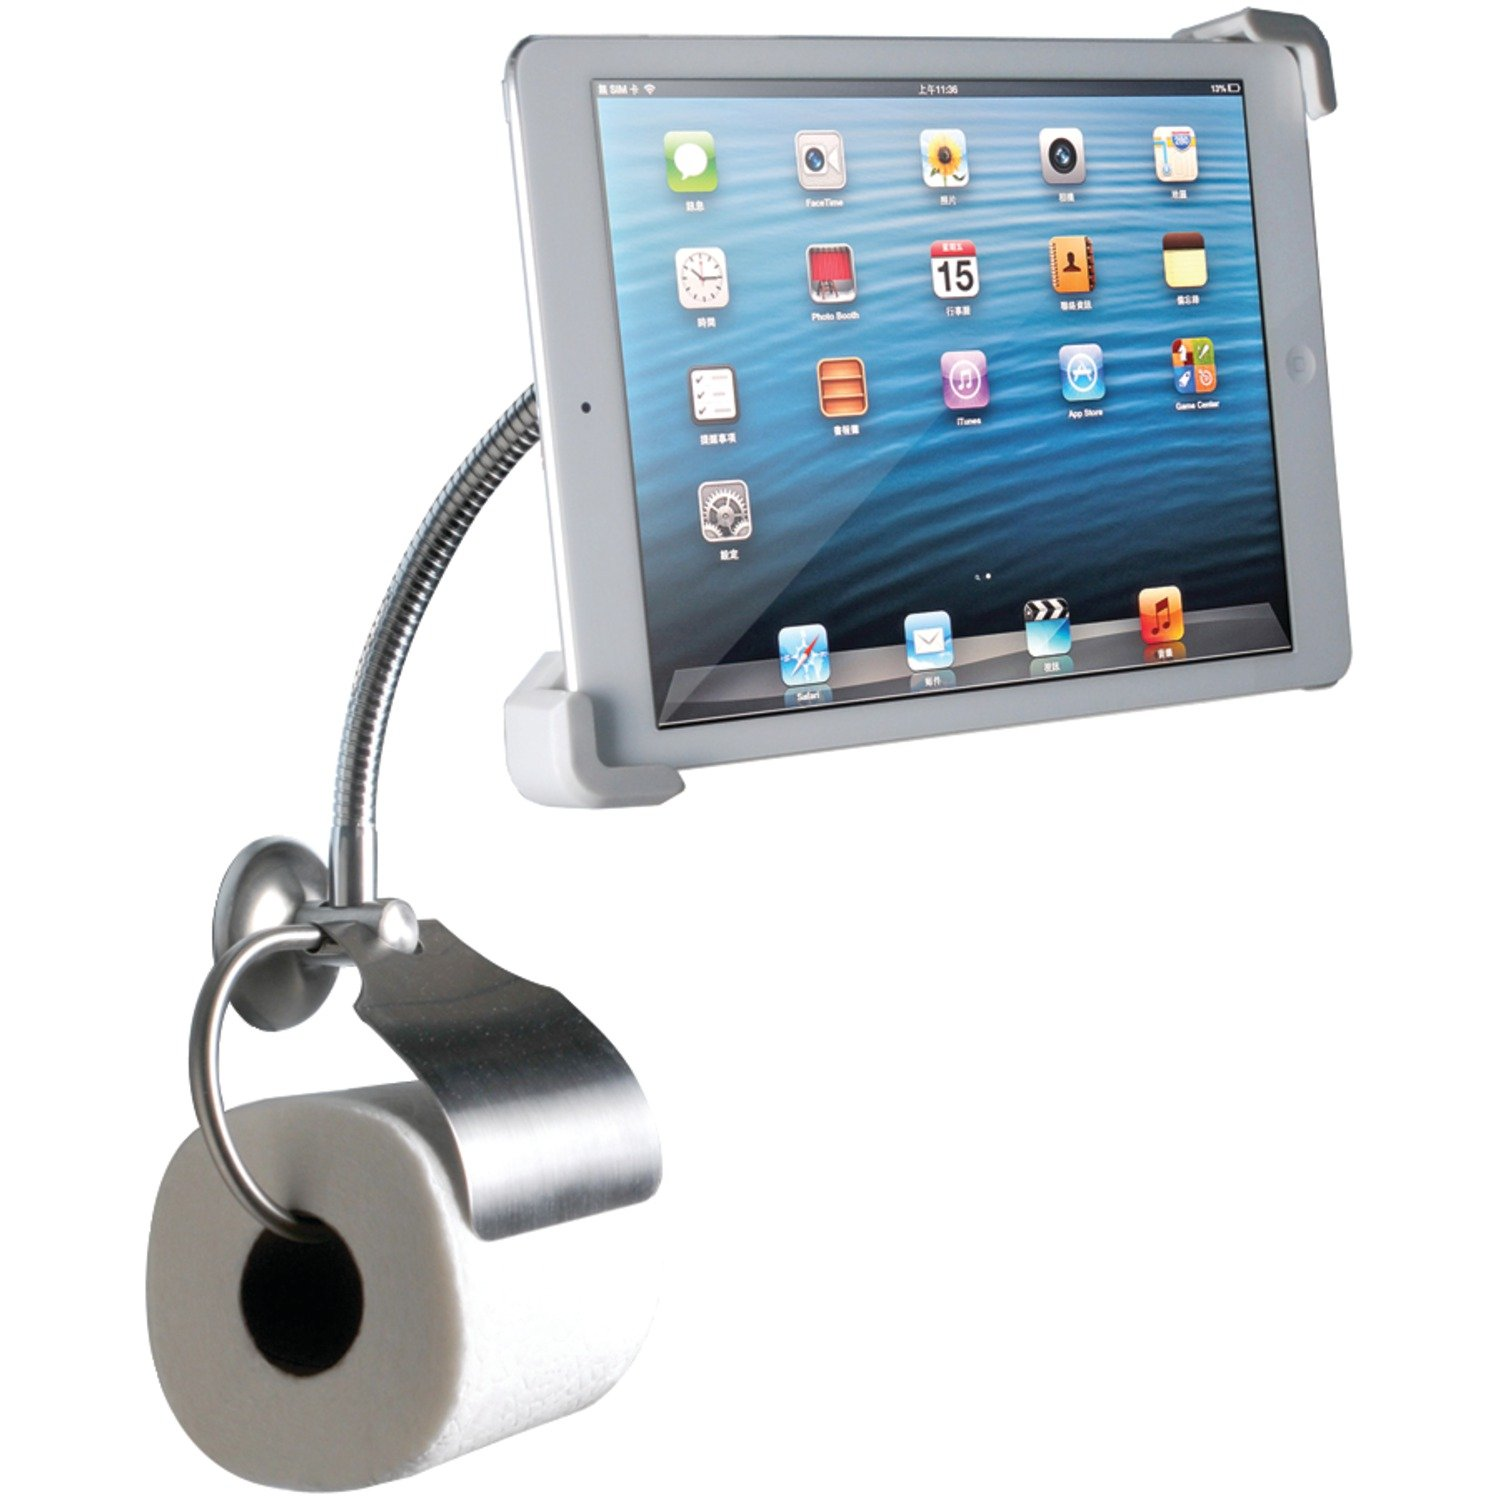 Amazon CTA Digital Wall Mount Bathroom Stand for iPad and